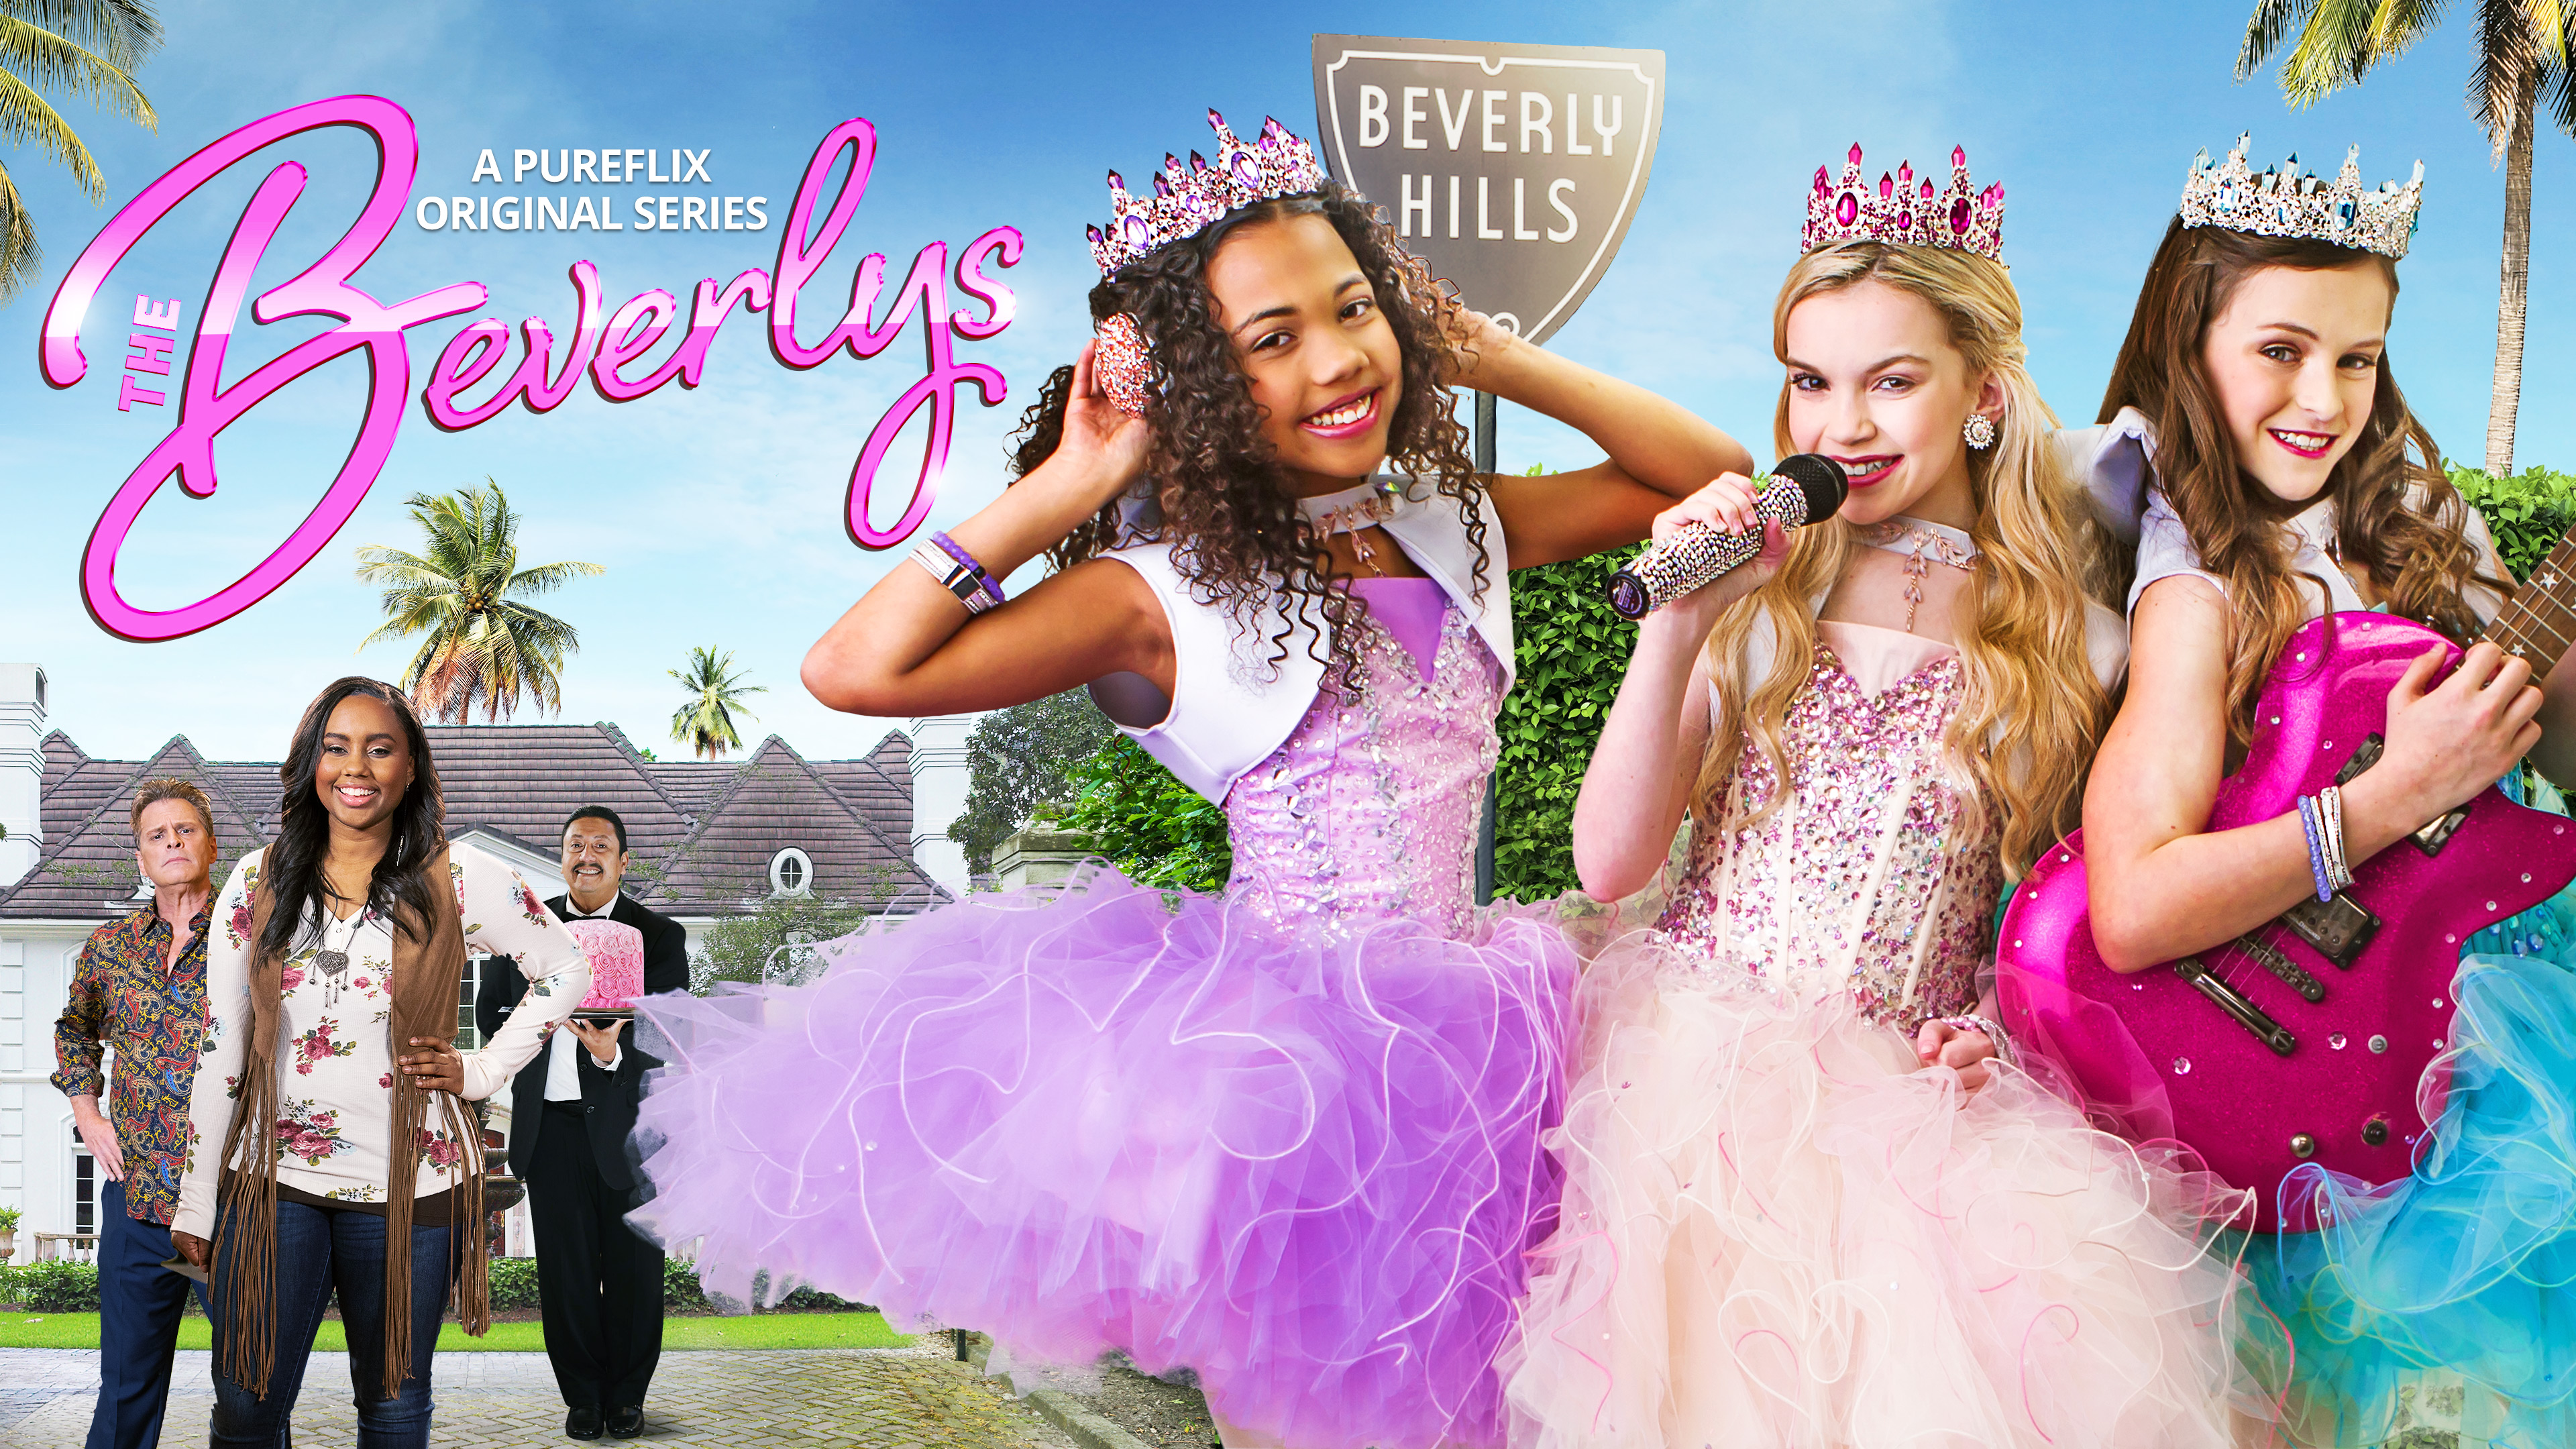 The Beverlys Trailer